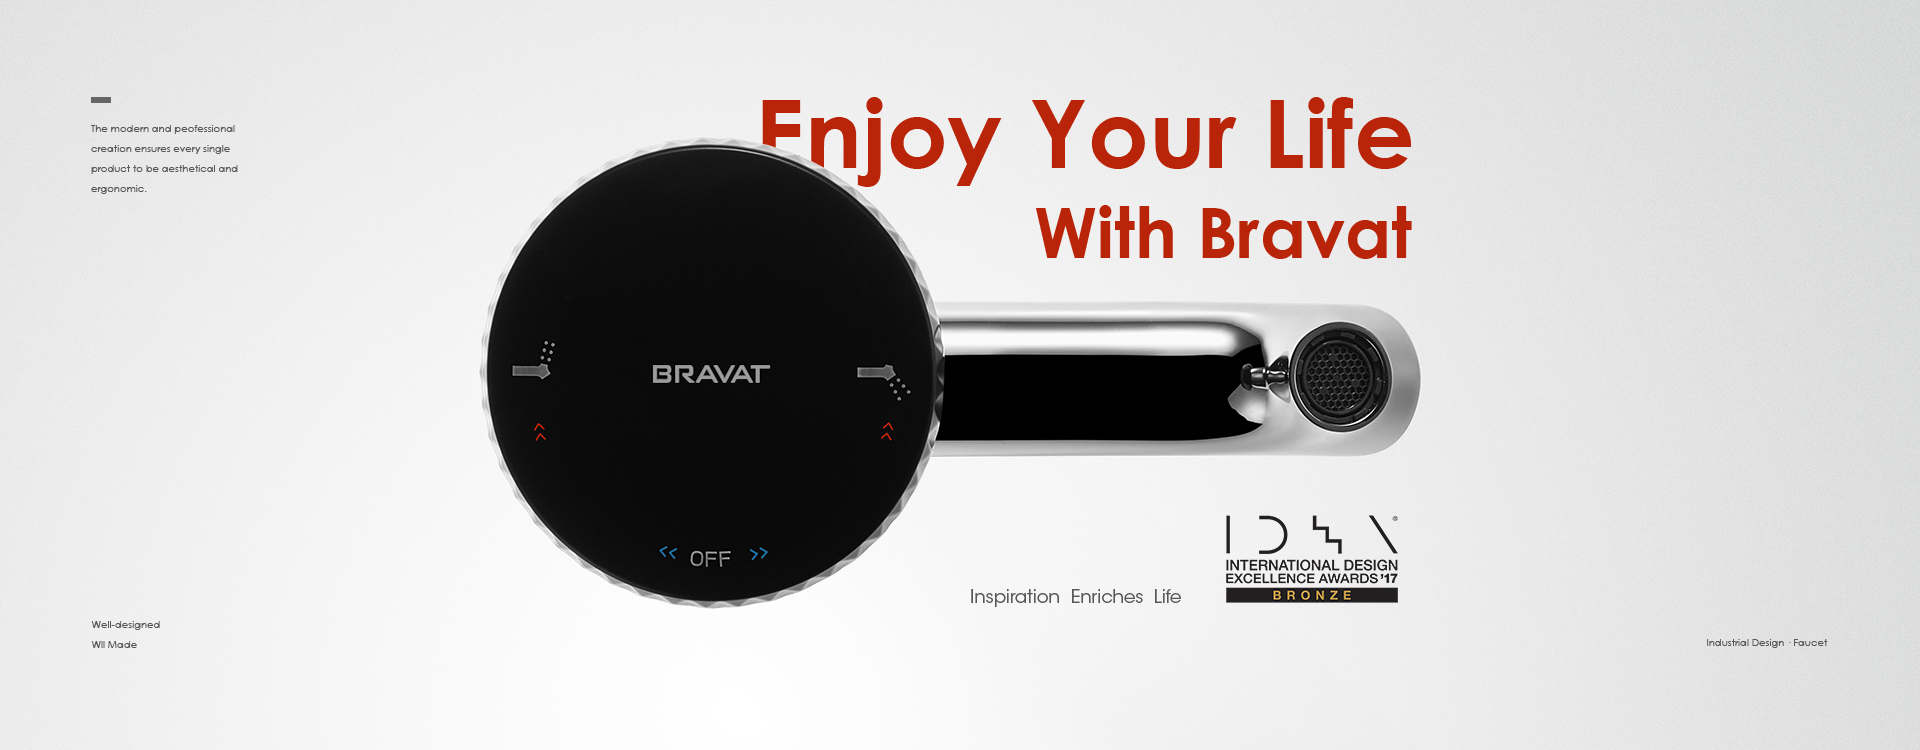 Enjoy Your Life With Bravat